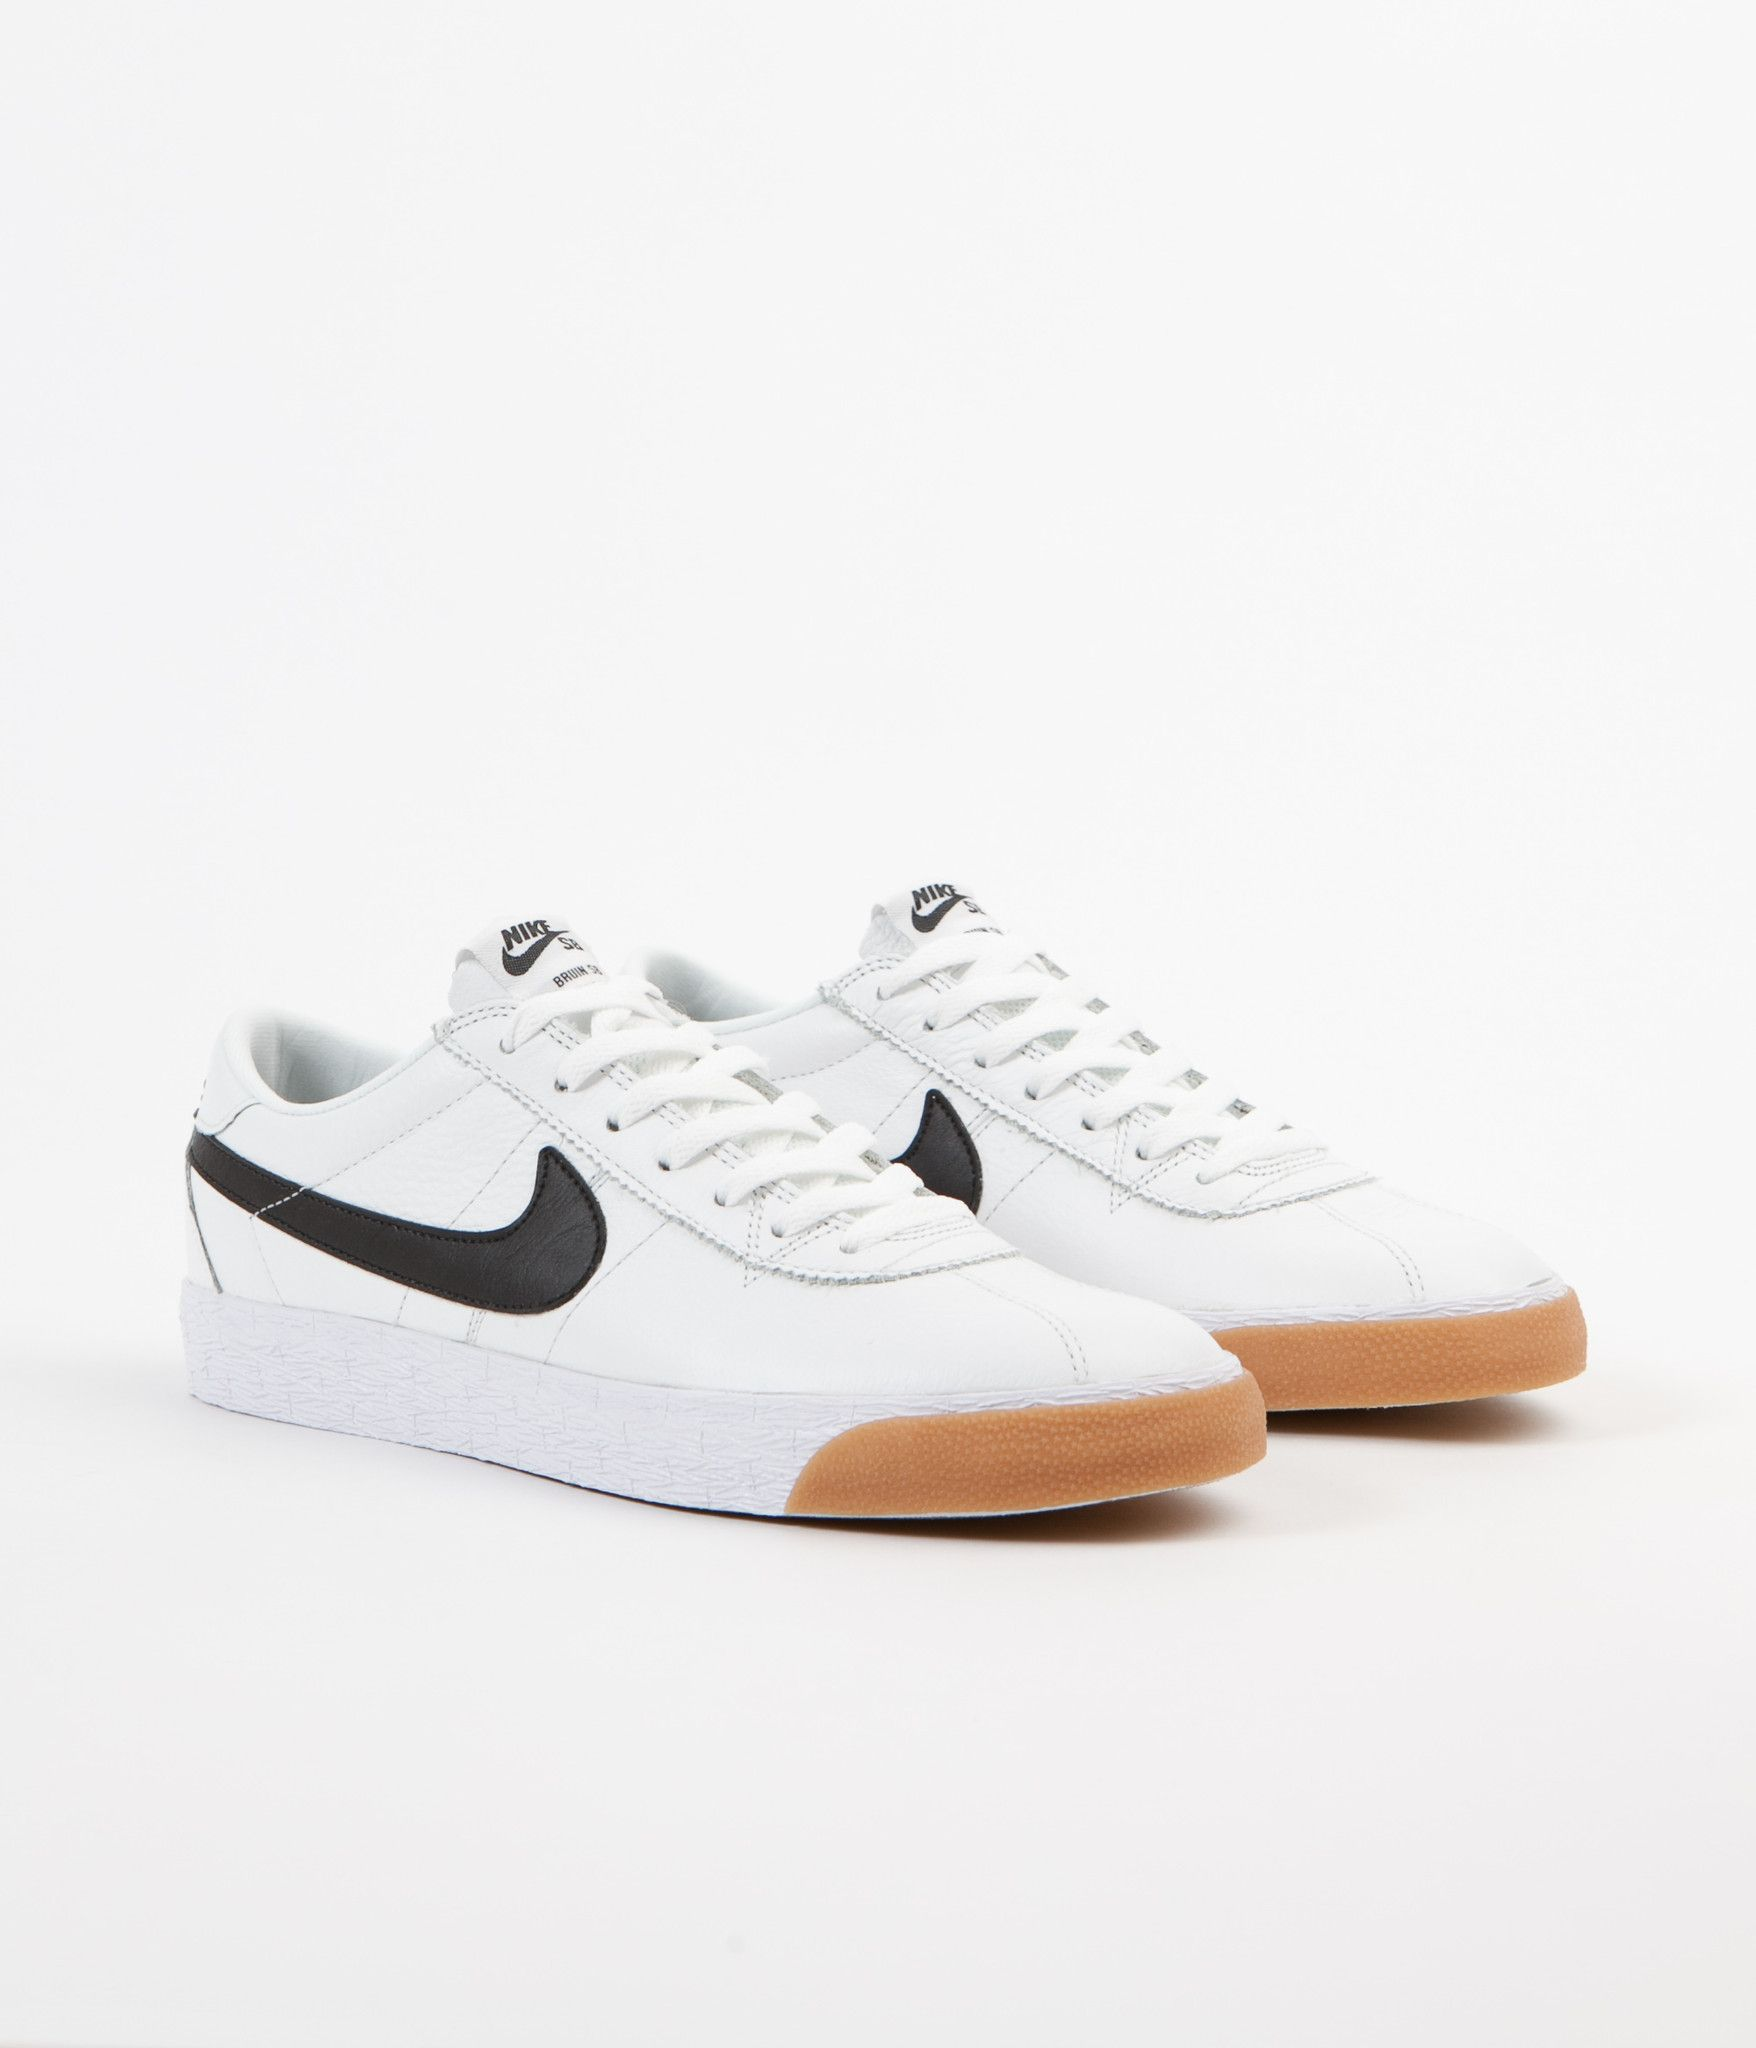 ecbb571243a85 Nike SB Bruin Premium SE Shoes - Summit White / Black - White Black Gums,